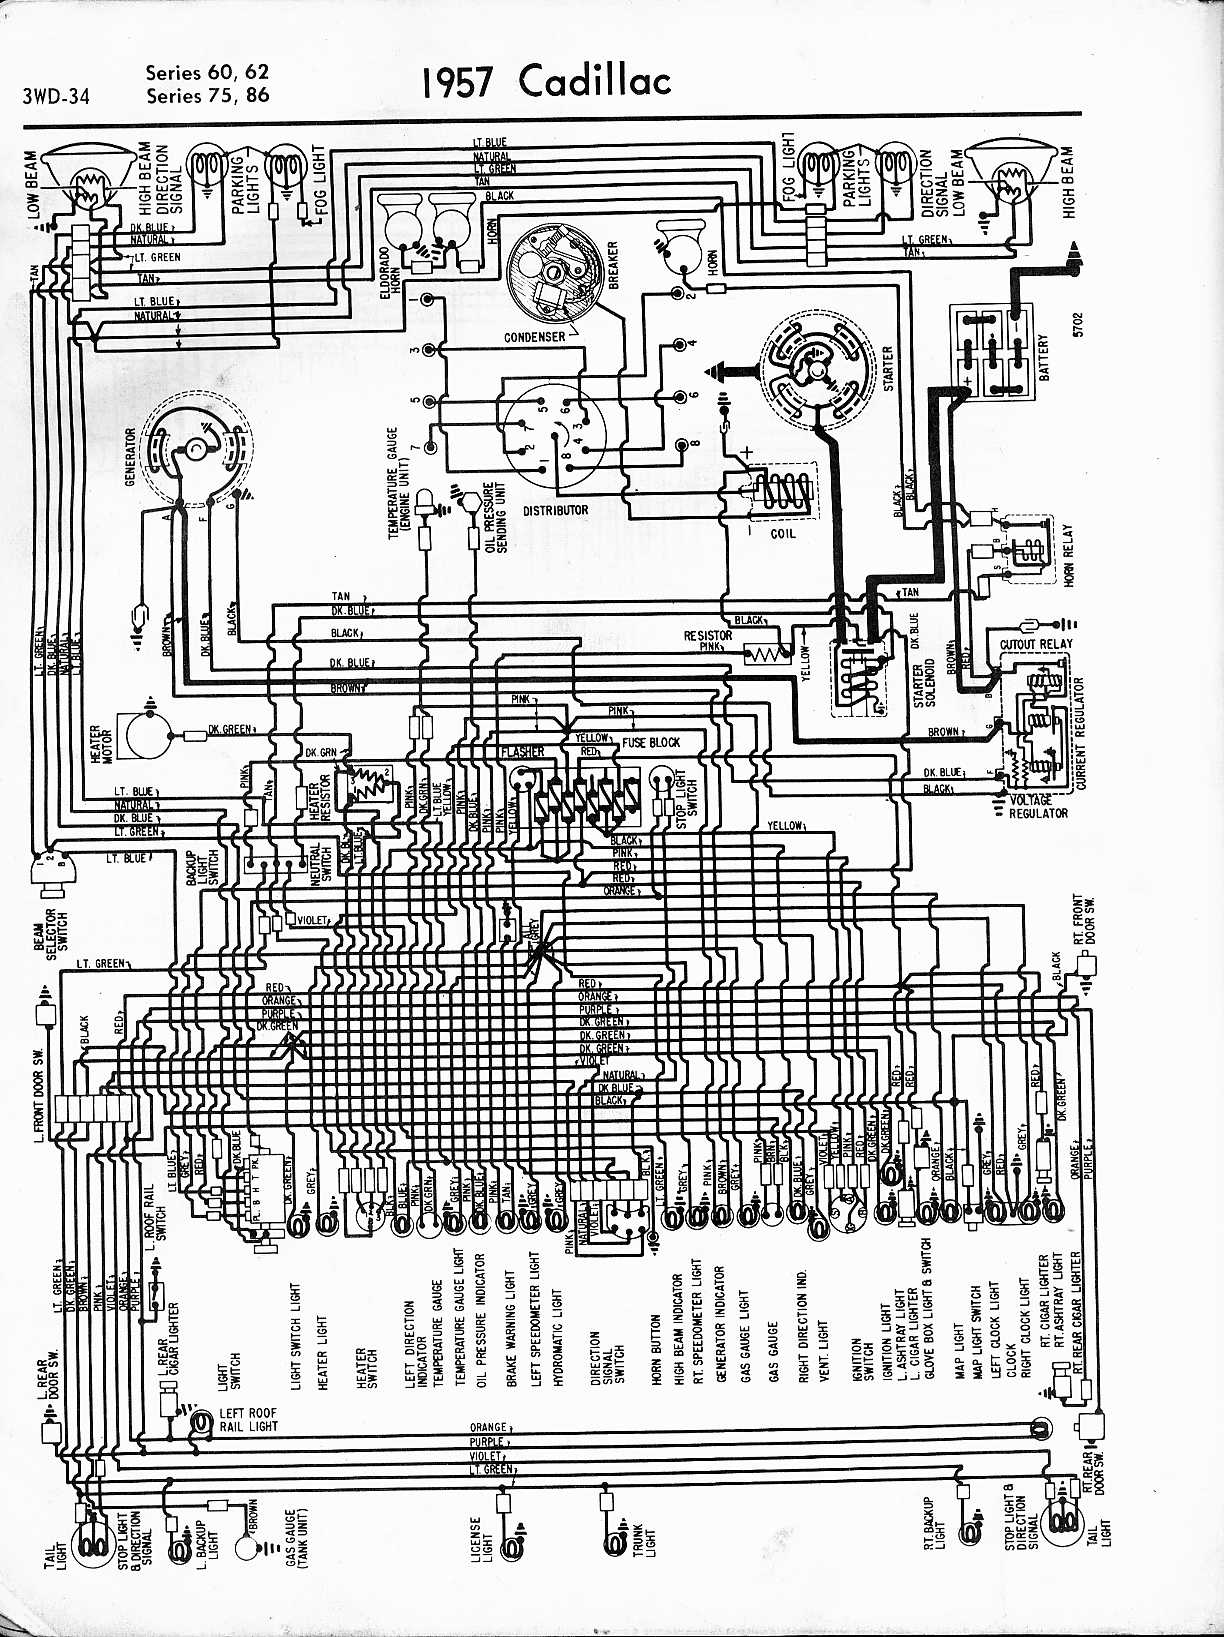 Cadillac Eldorado Fuse Box Diagram on chrysler heater core replacement